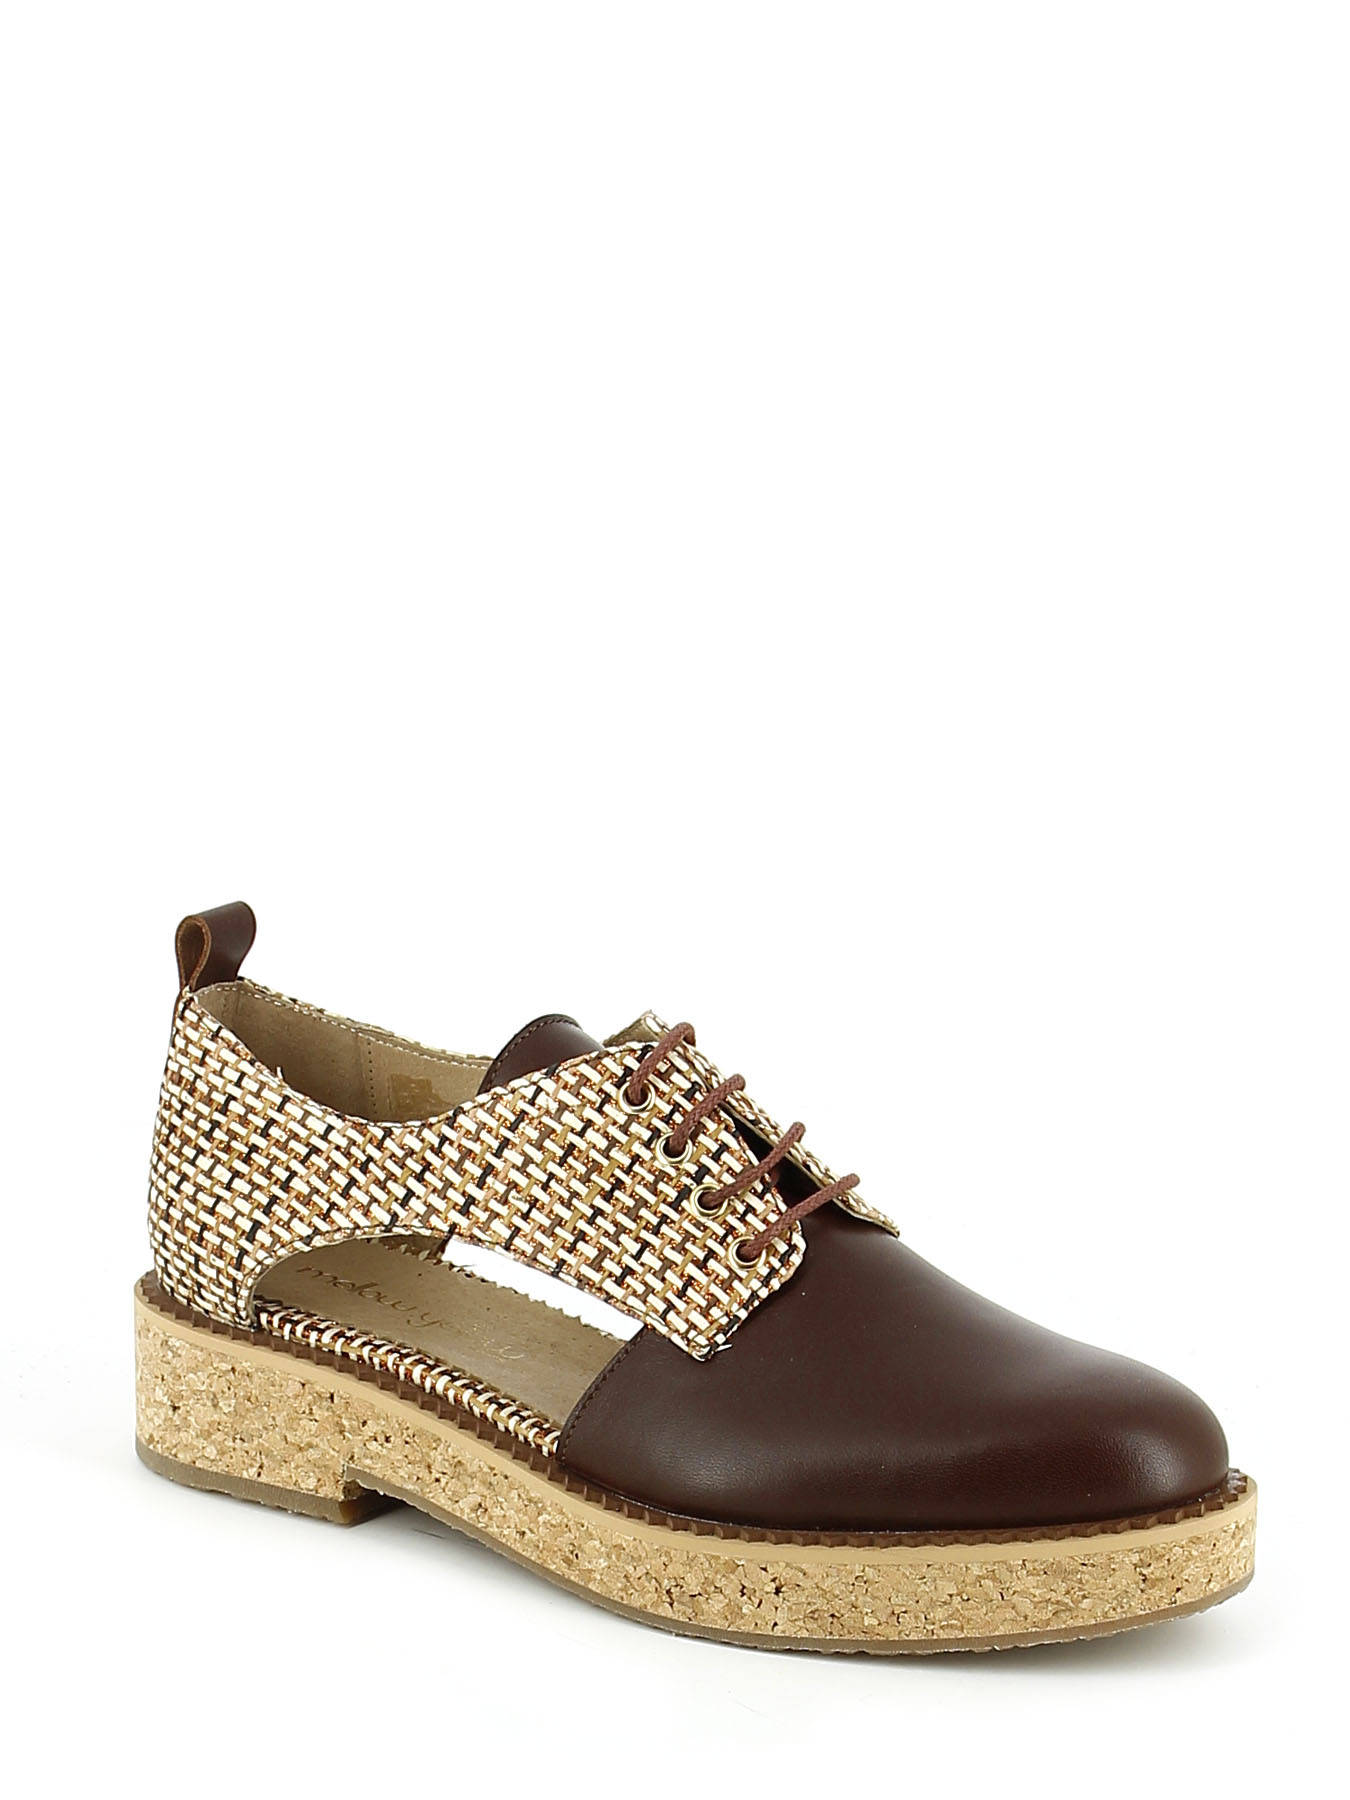 Chaussures Mellow Yellow marron fille OBluV